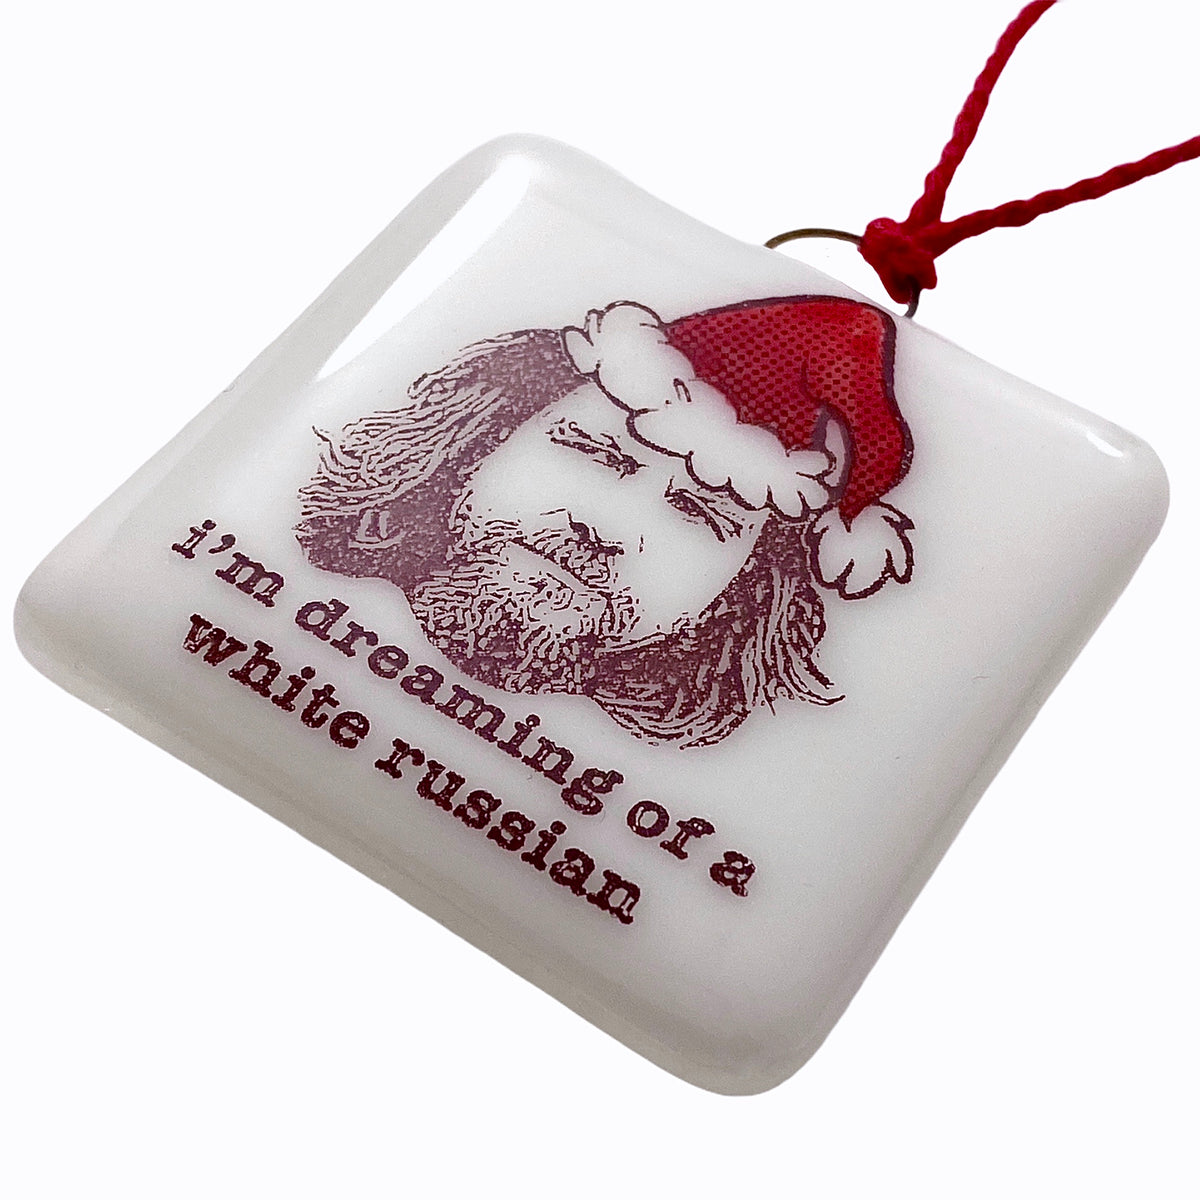 "The Big Lebowski - The Dude  ""I'm Dreaming of a White Russian"" Ornament"